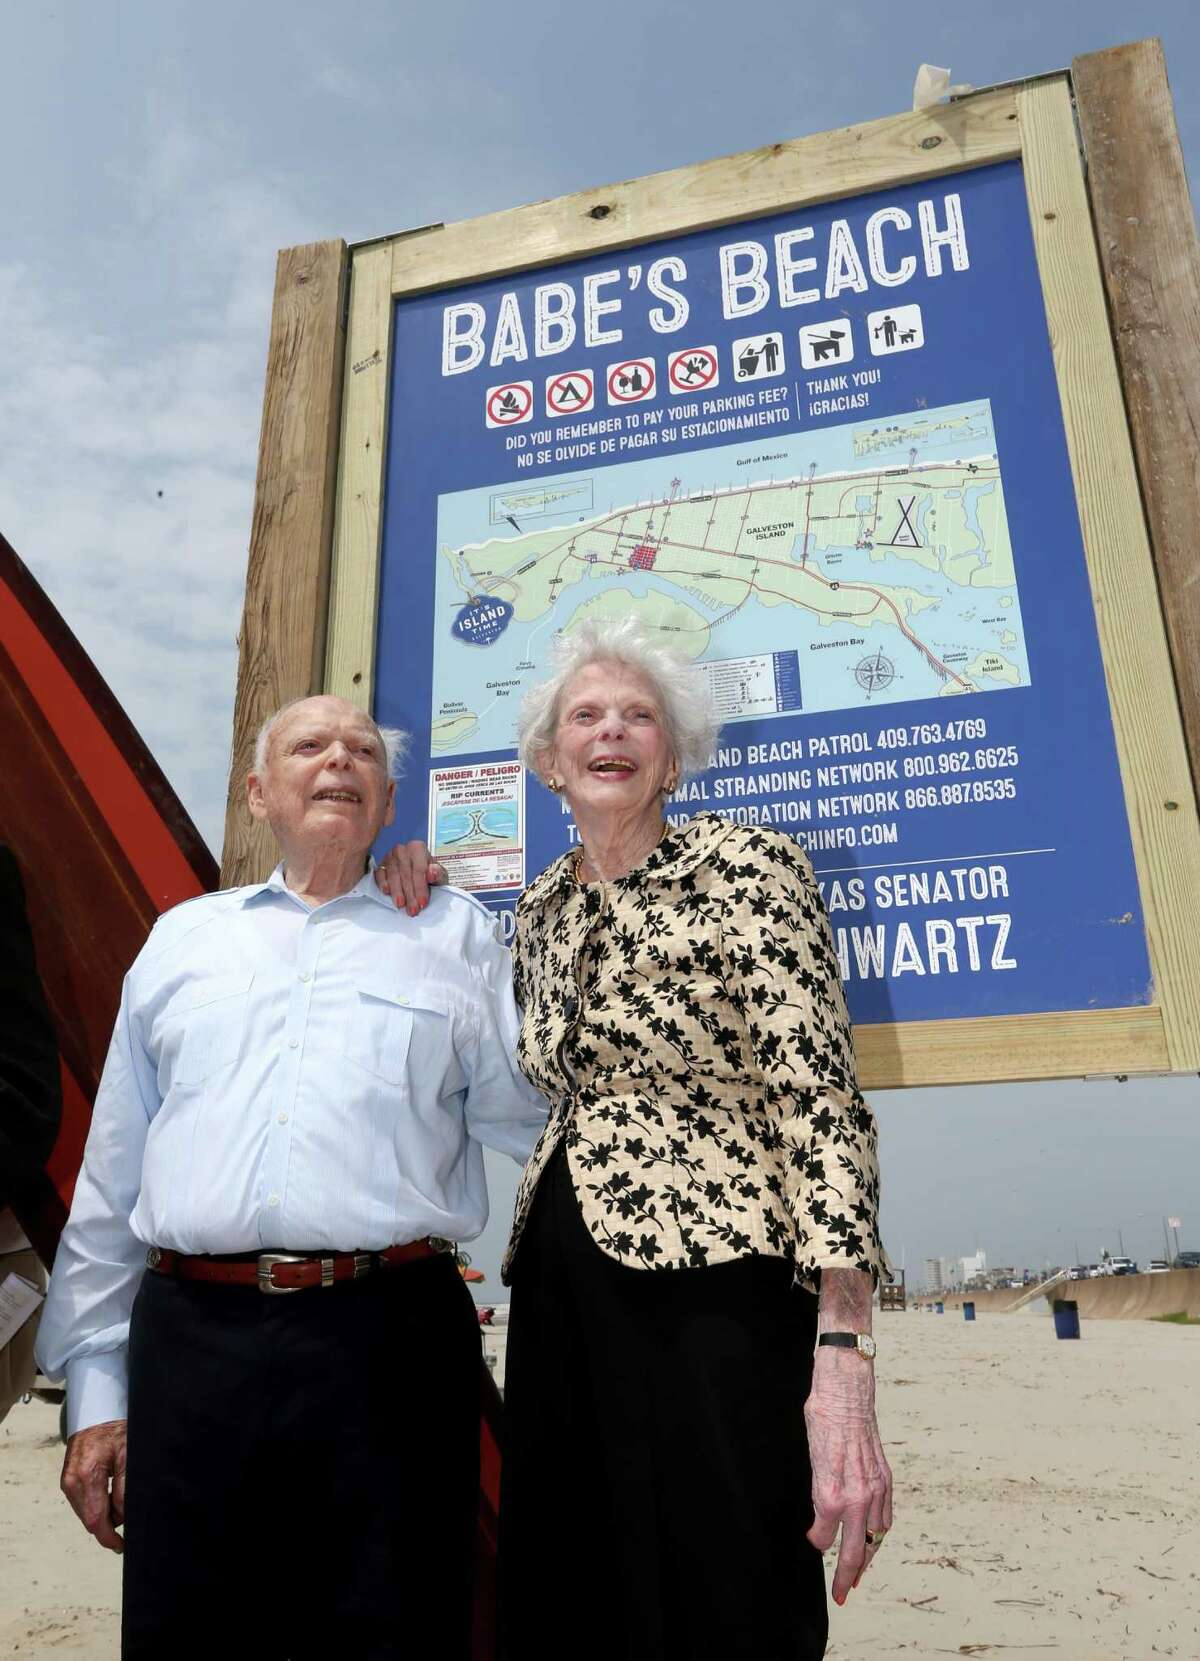 """Former Texas Sen. A.R. """"Babe"""" Schwartz and his wife, Marilyn, celebrate the dedication of Babe's Beach in Galveston earlier this year."""